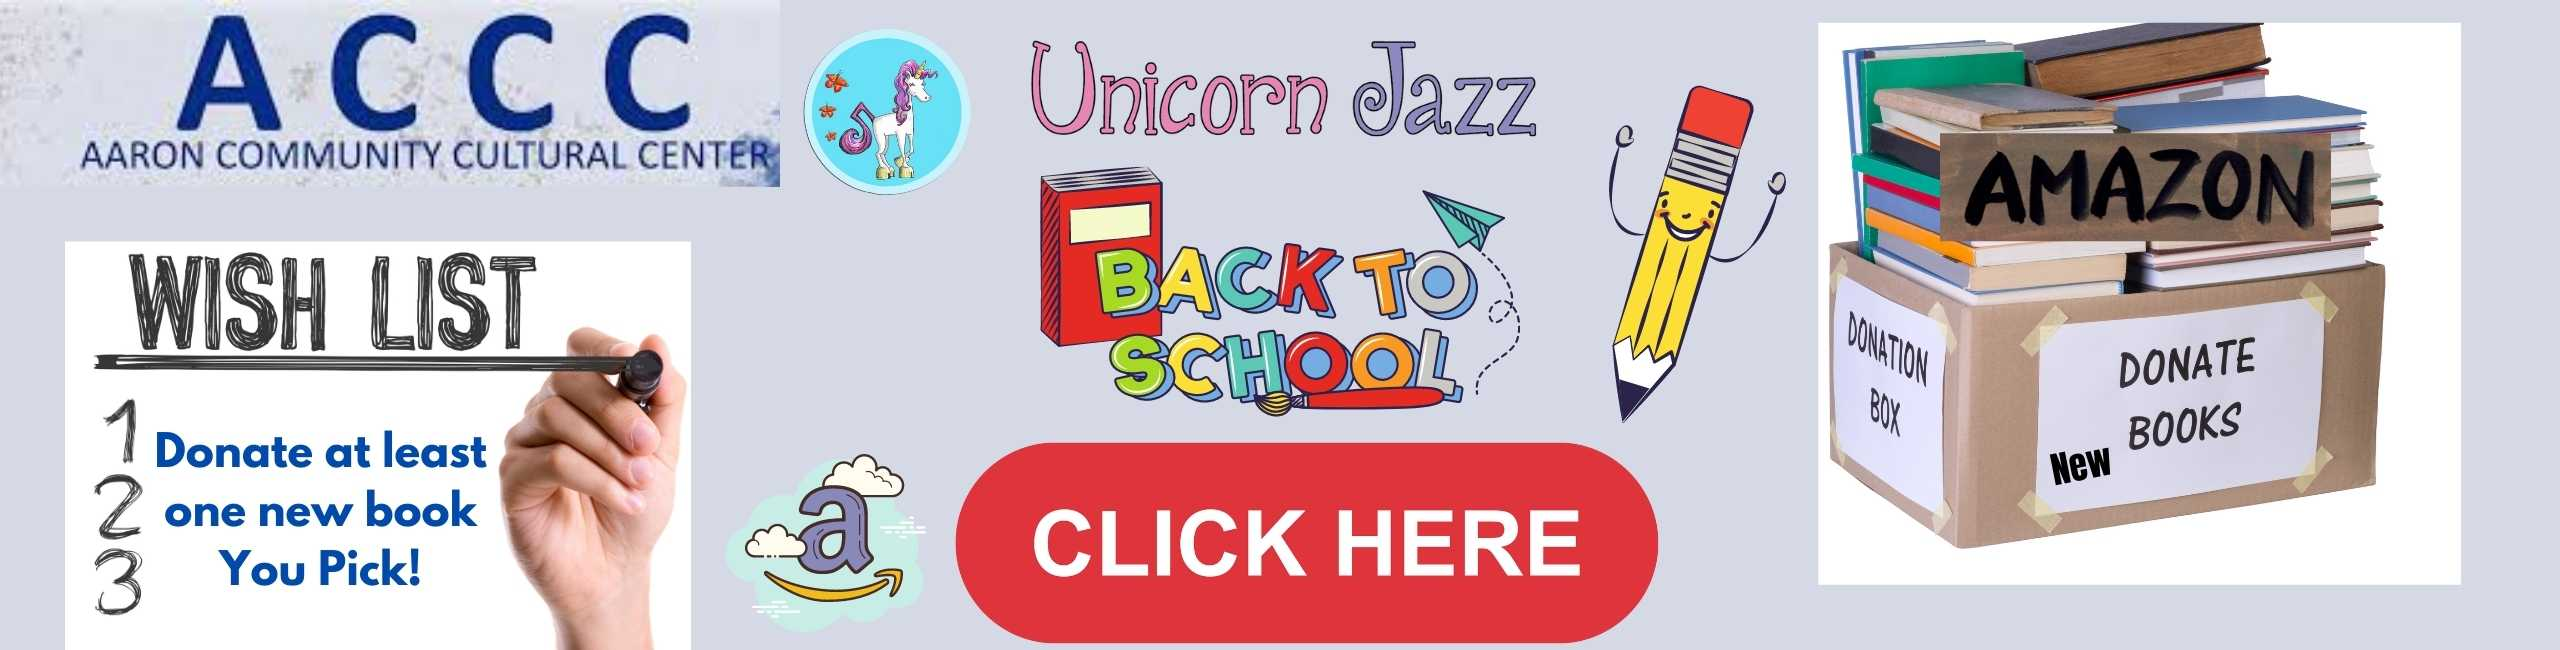 unicorn jazz Donation Book Drive Storytime & Song Saturday, August 7, 2021